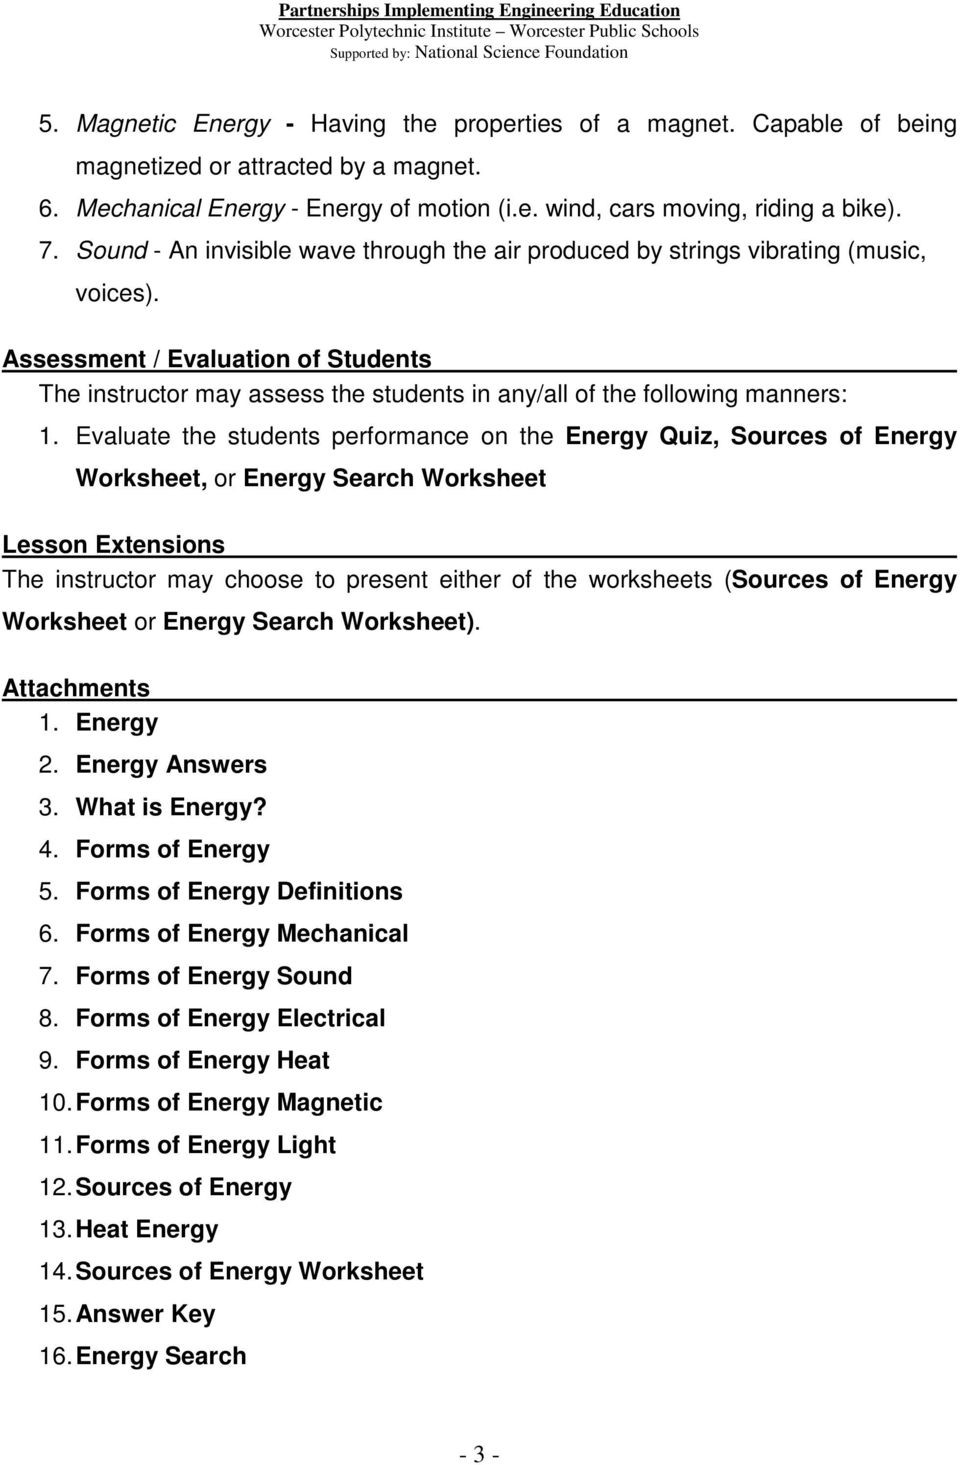 Forms Of Energy Worksheet Answers forms Energy Worksheet Answers Energy Etfs